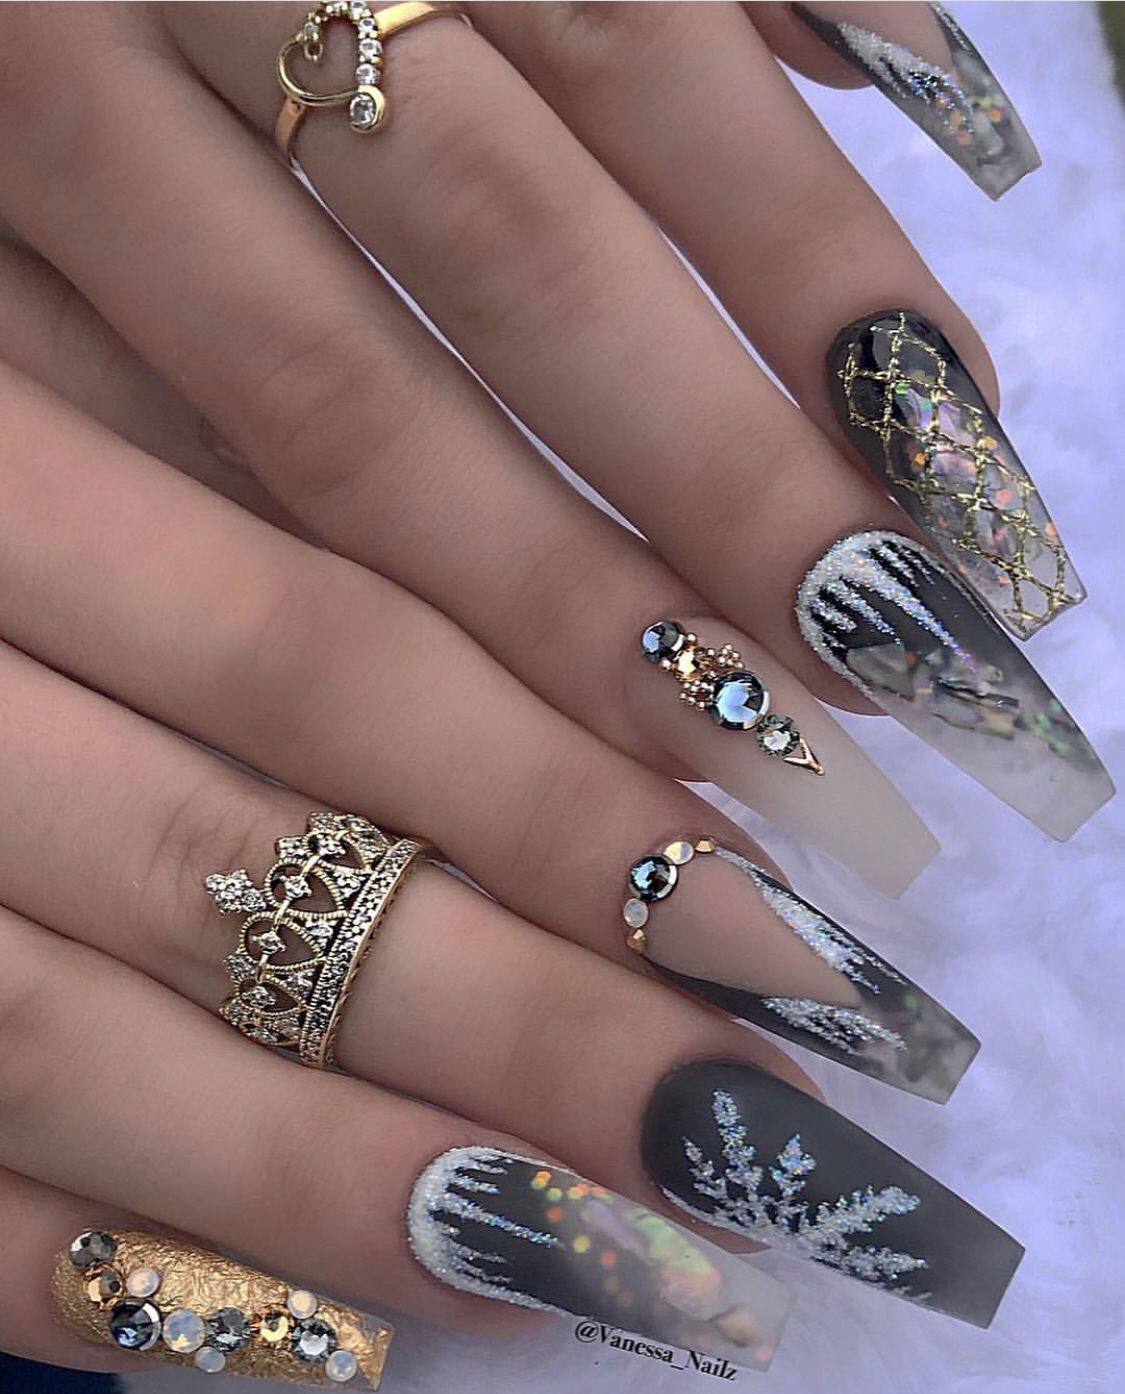 Pin By Jasmine Lampkin On Christmas Fun Christmas Nails Acrylic Luxury Nails Coffin Nails Designs